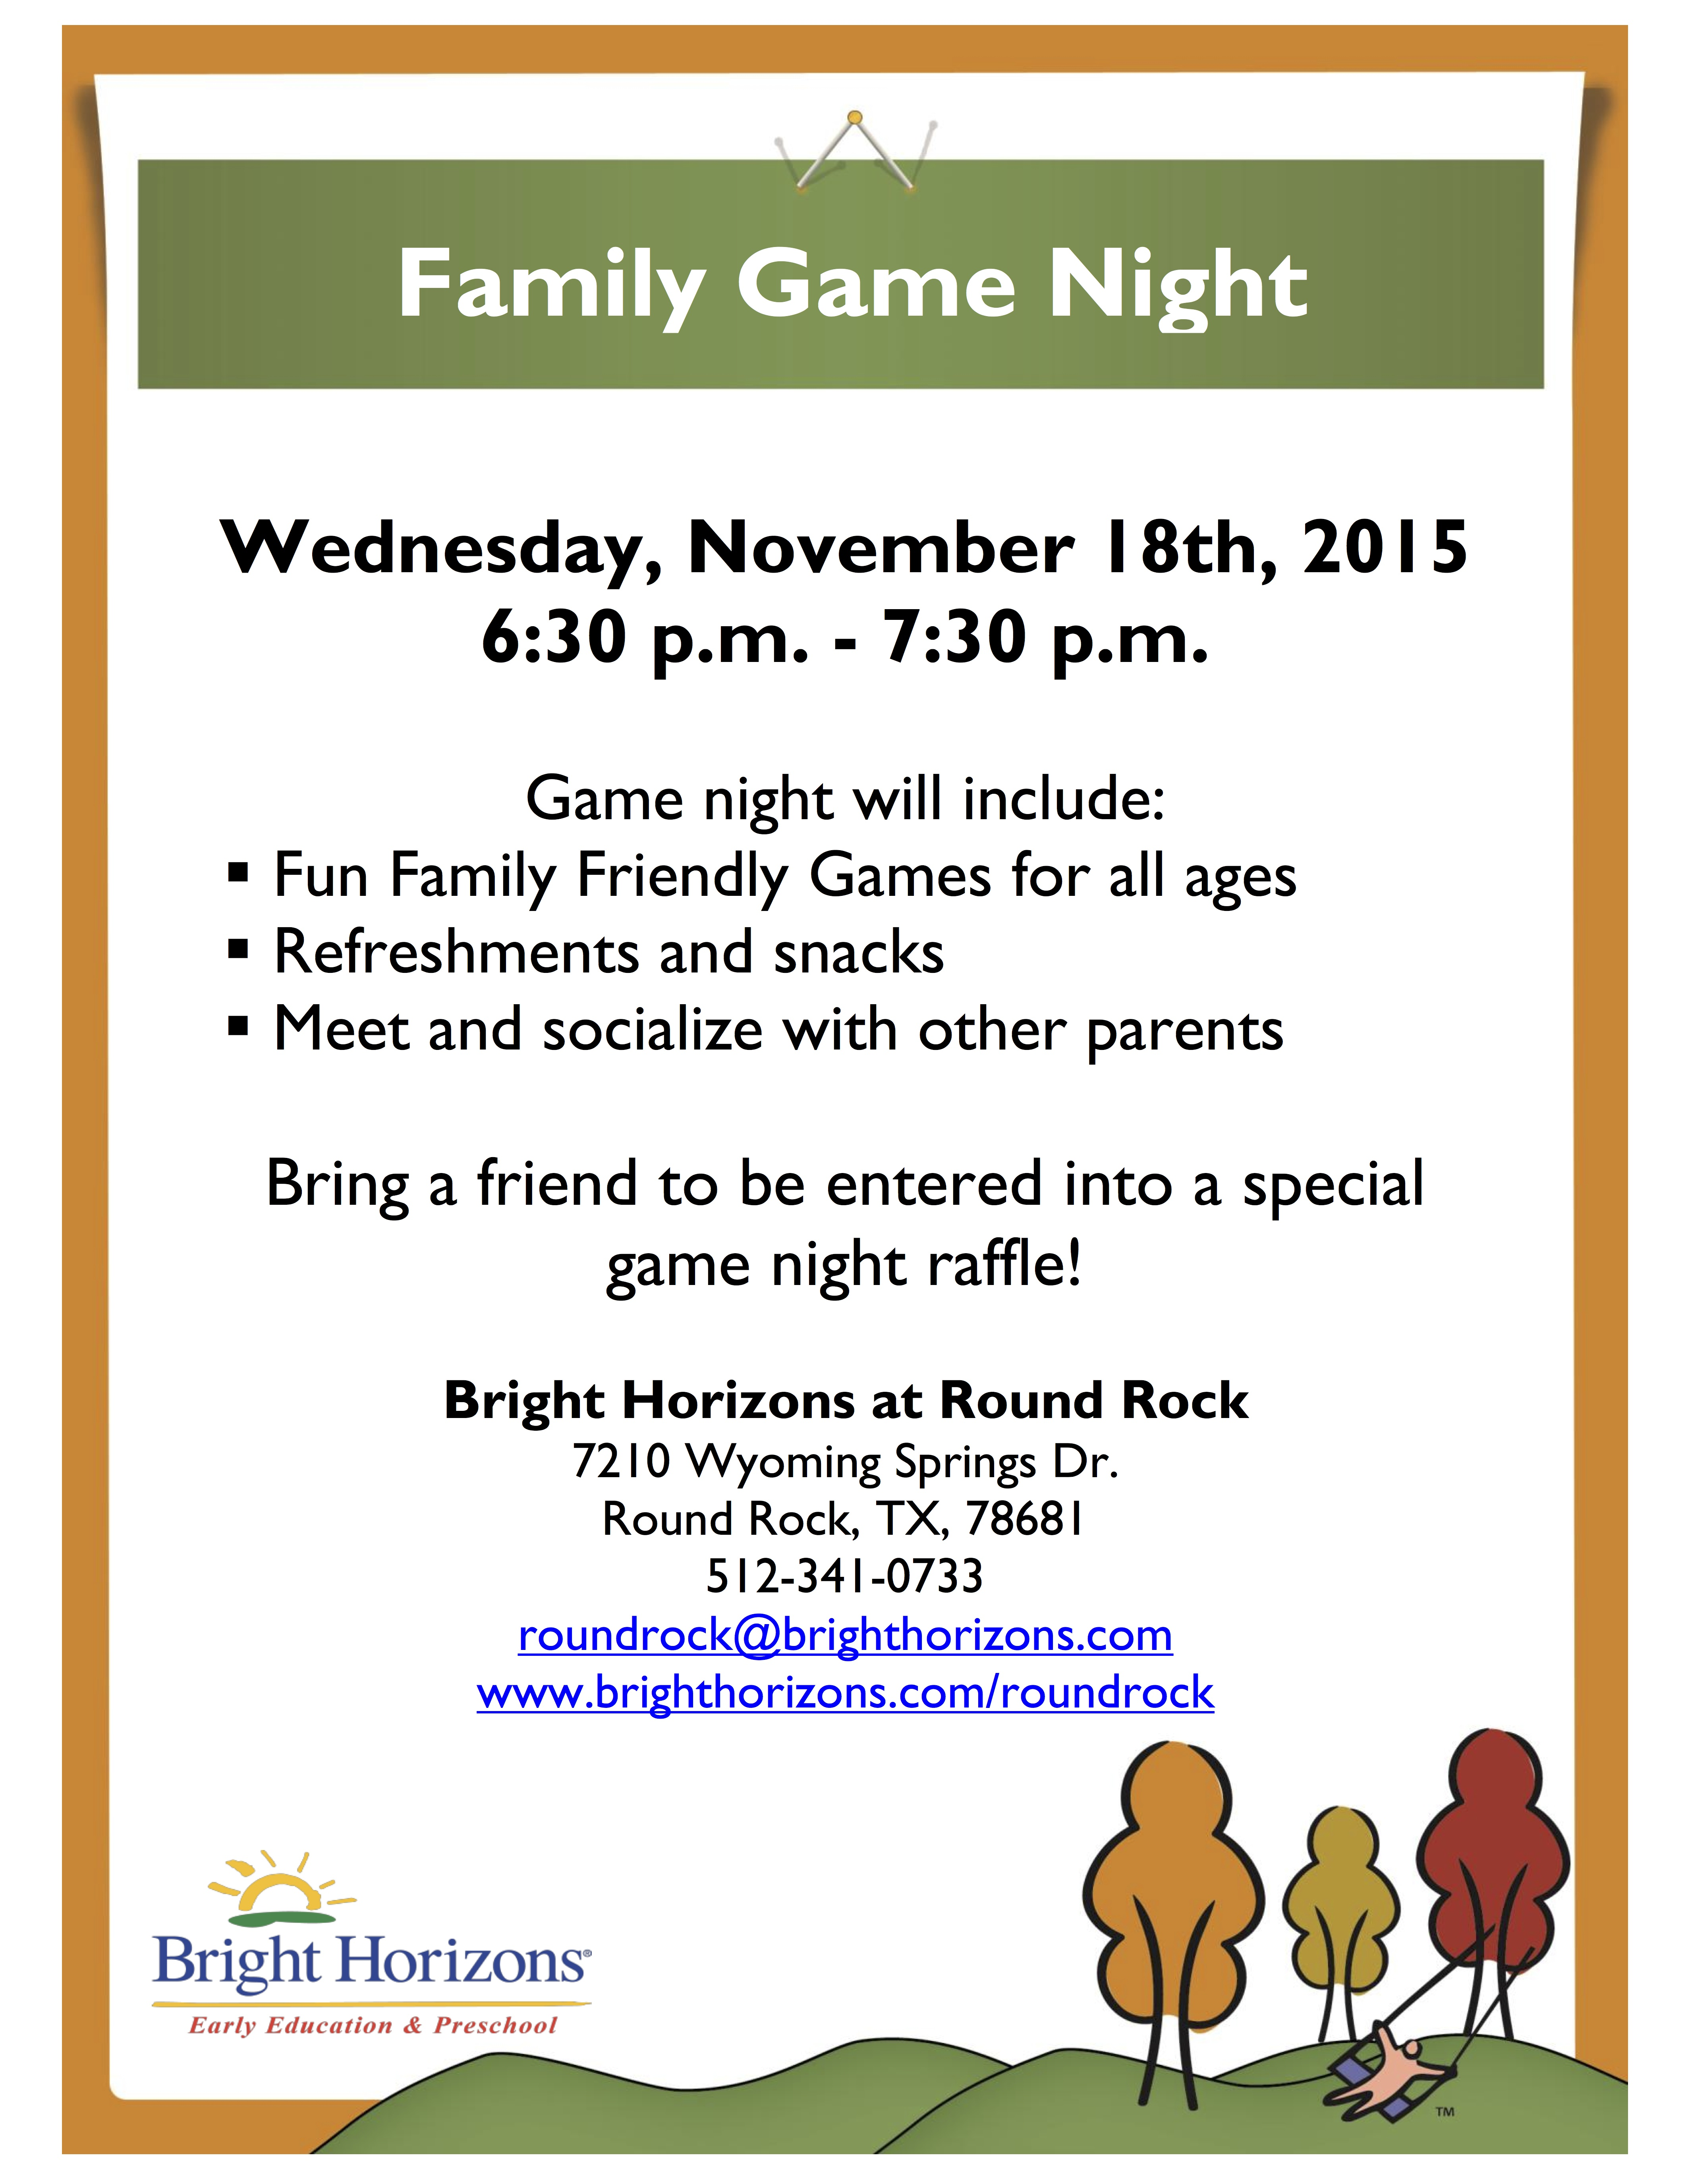 Family Game Night Flyer 2015